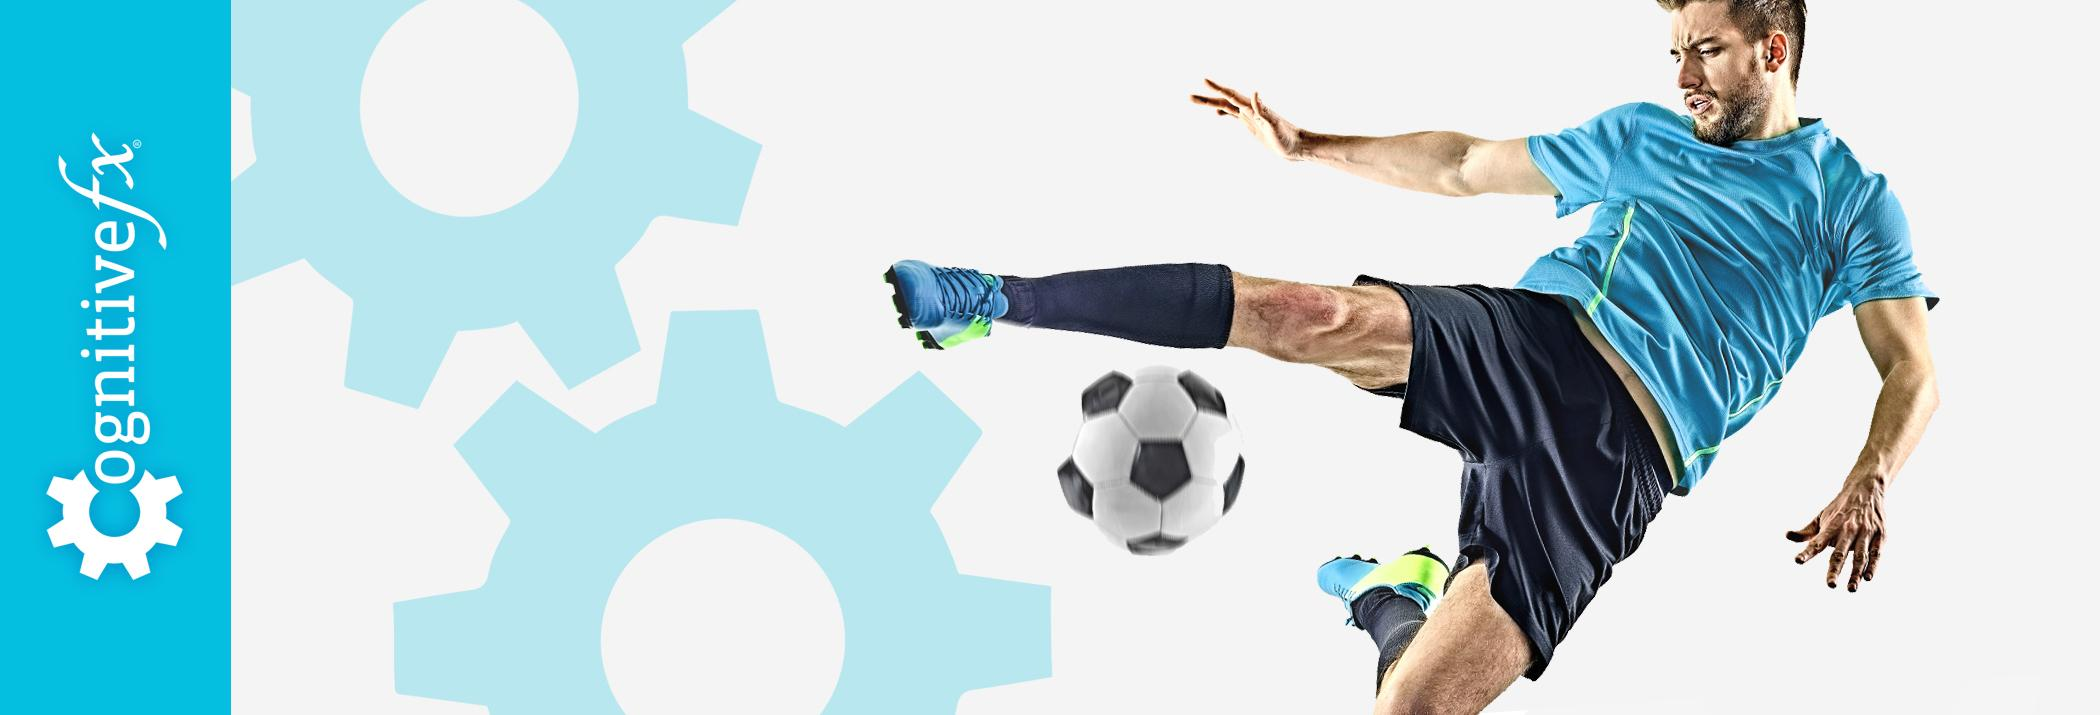 Soccer Concussions: Myths, Facts, Prevention, and Recovery